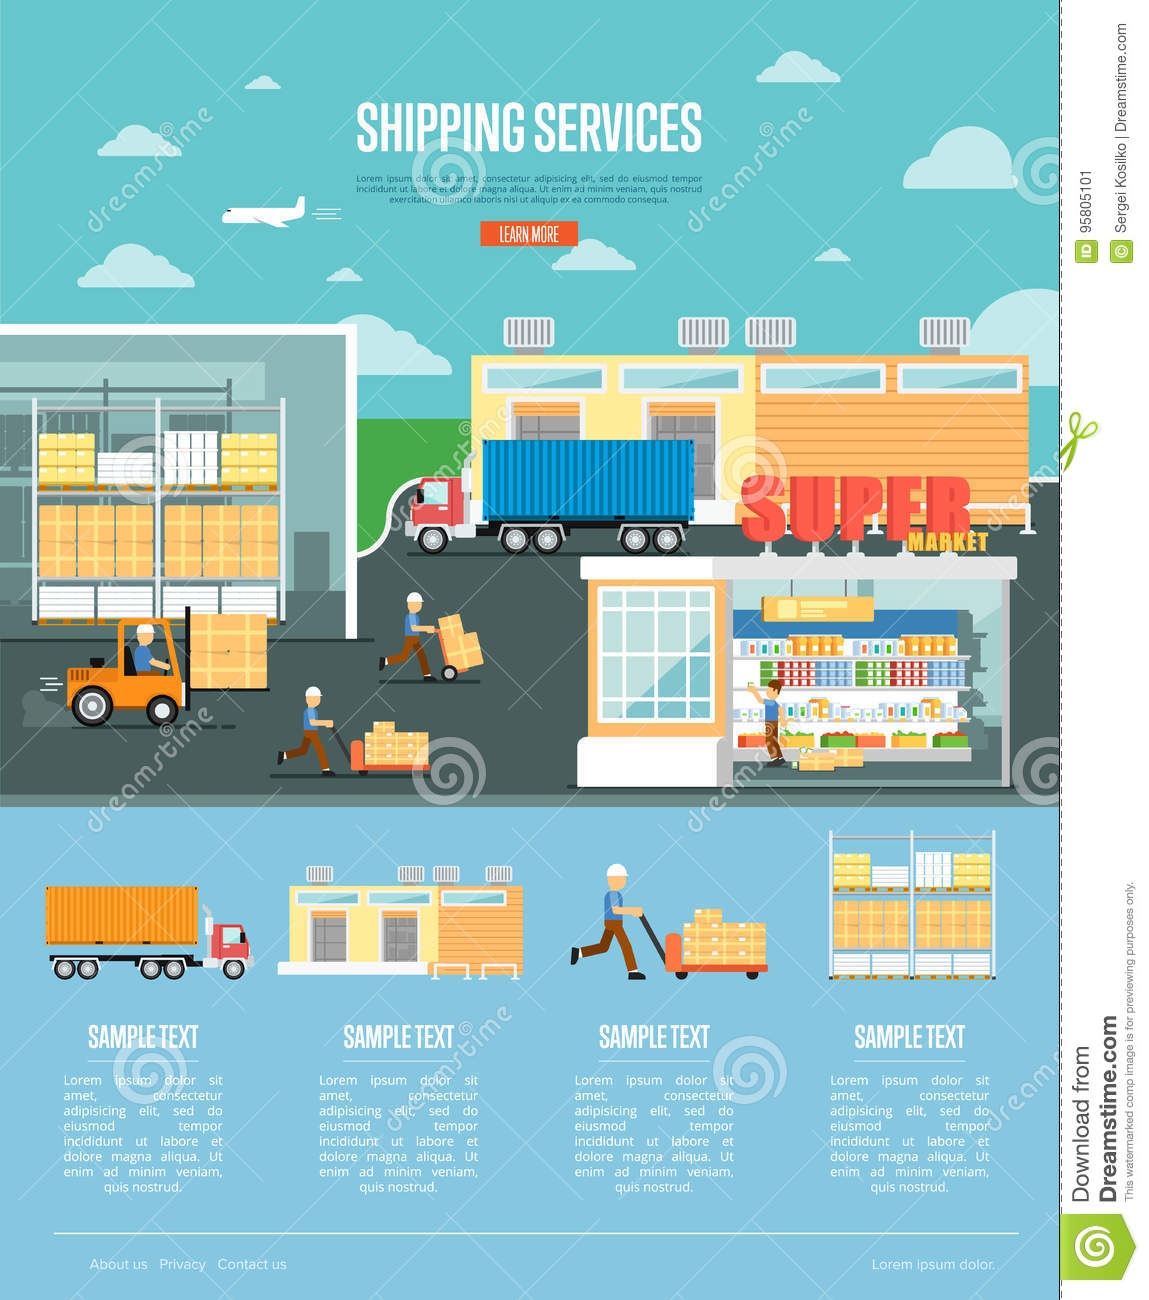 Shipping Services And Retail Distribution Poster Stock